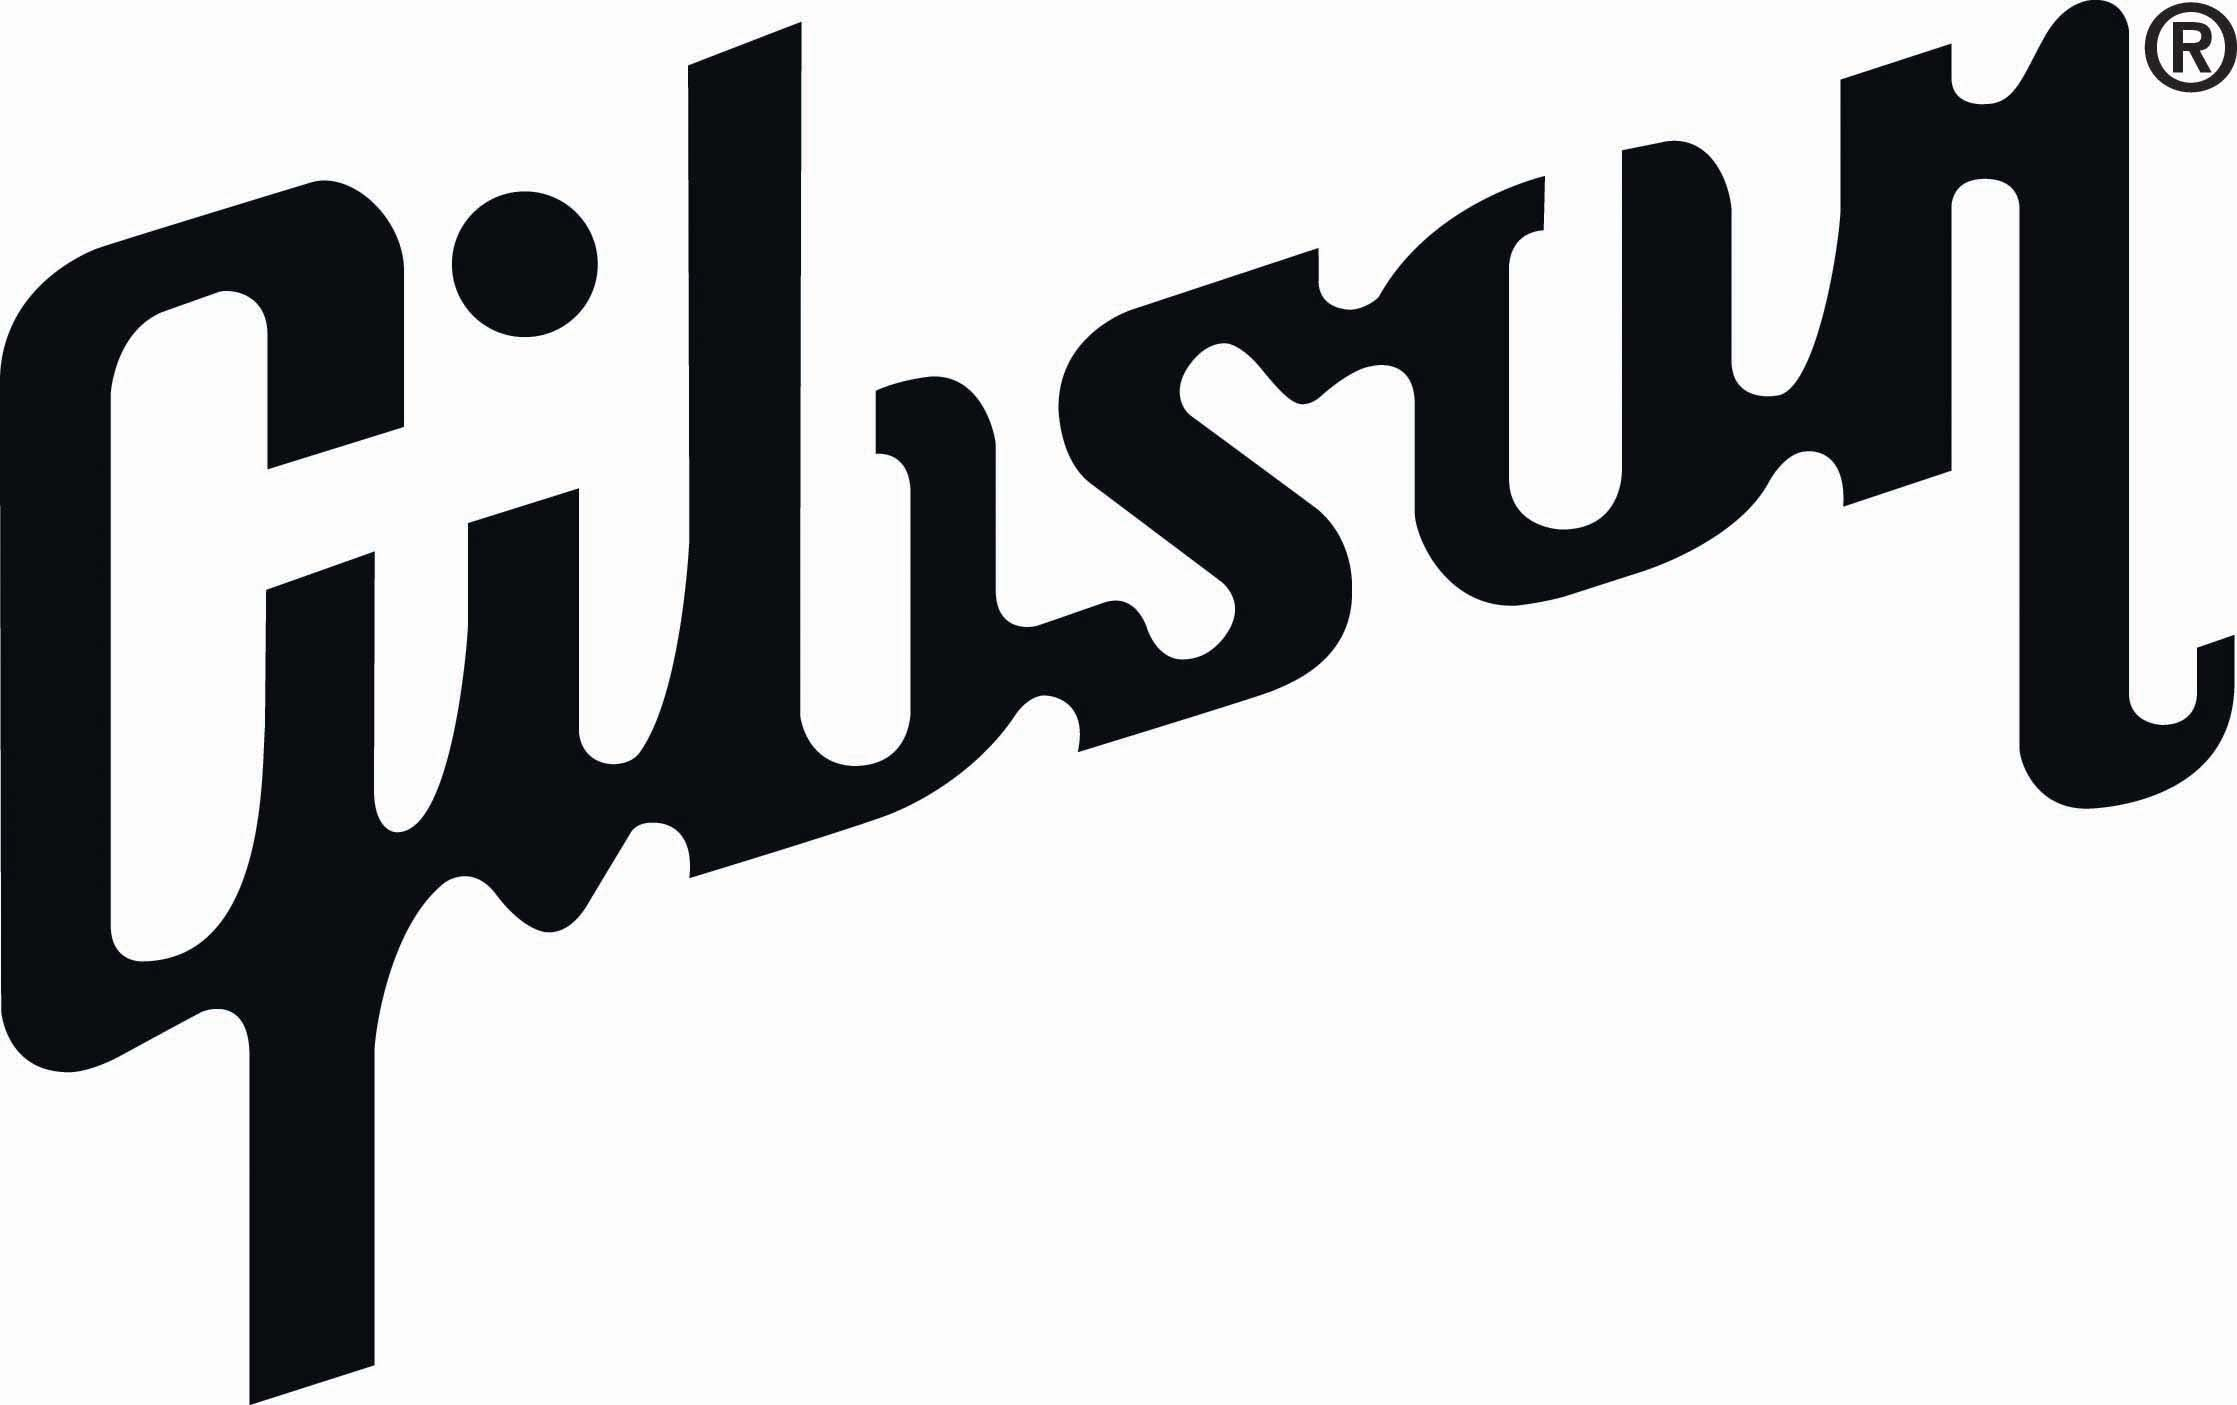 Free Download Logos Gibson Musical Instruments 2237x1405